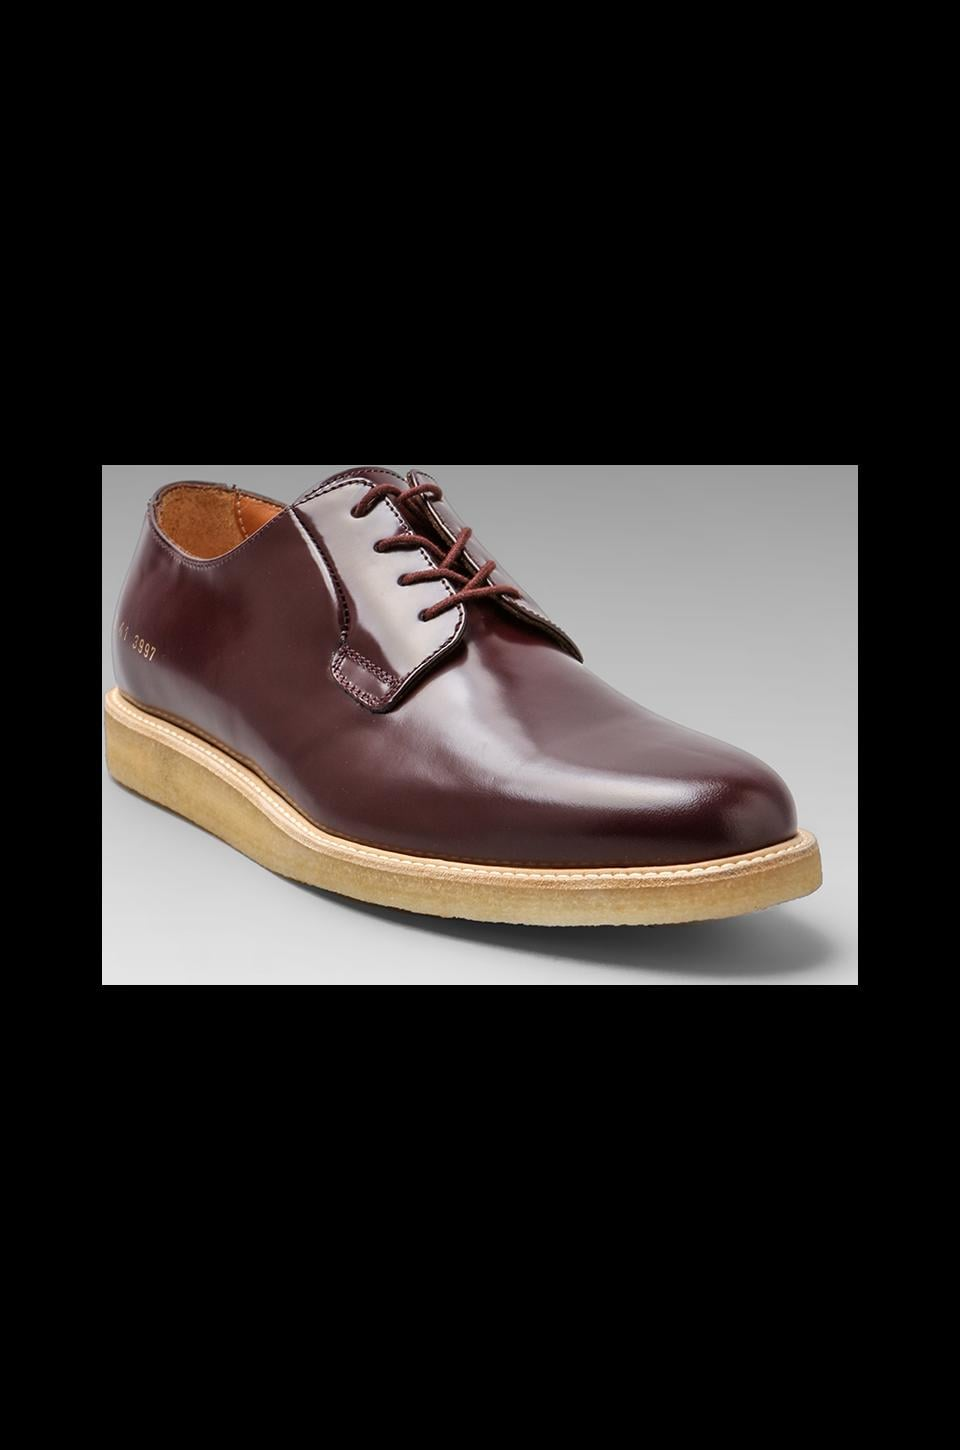 Common Projects Derby in Burgundy